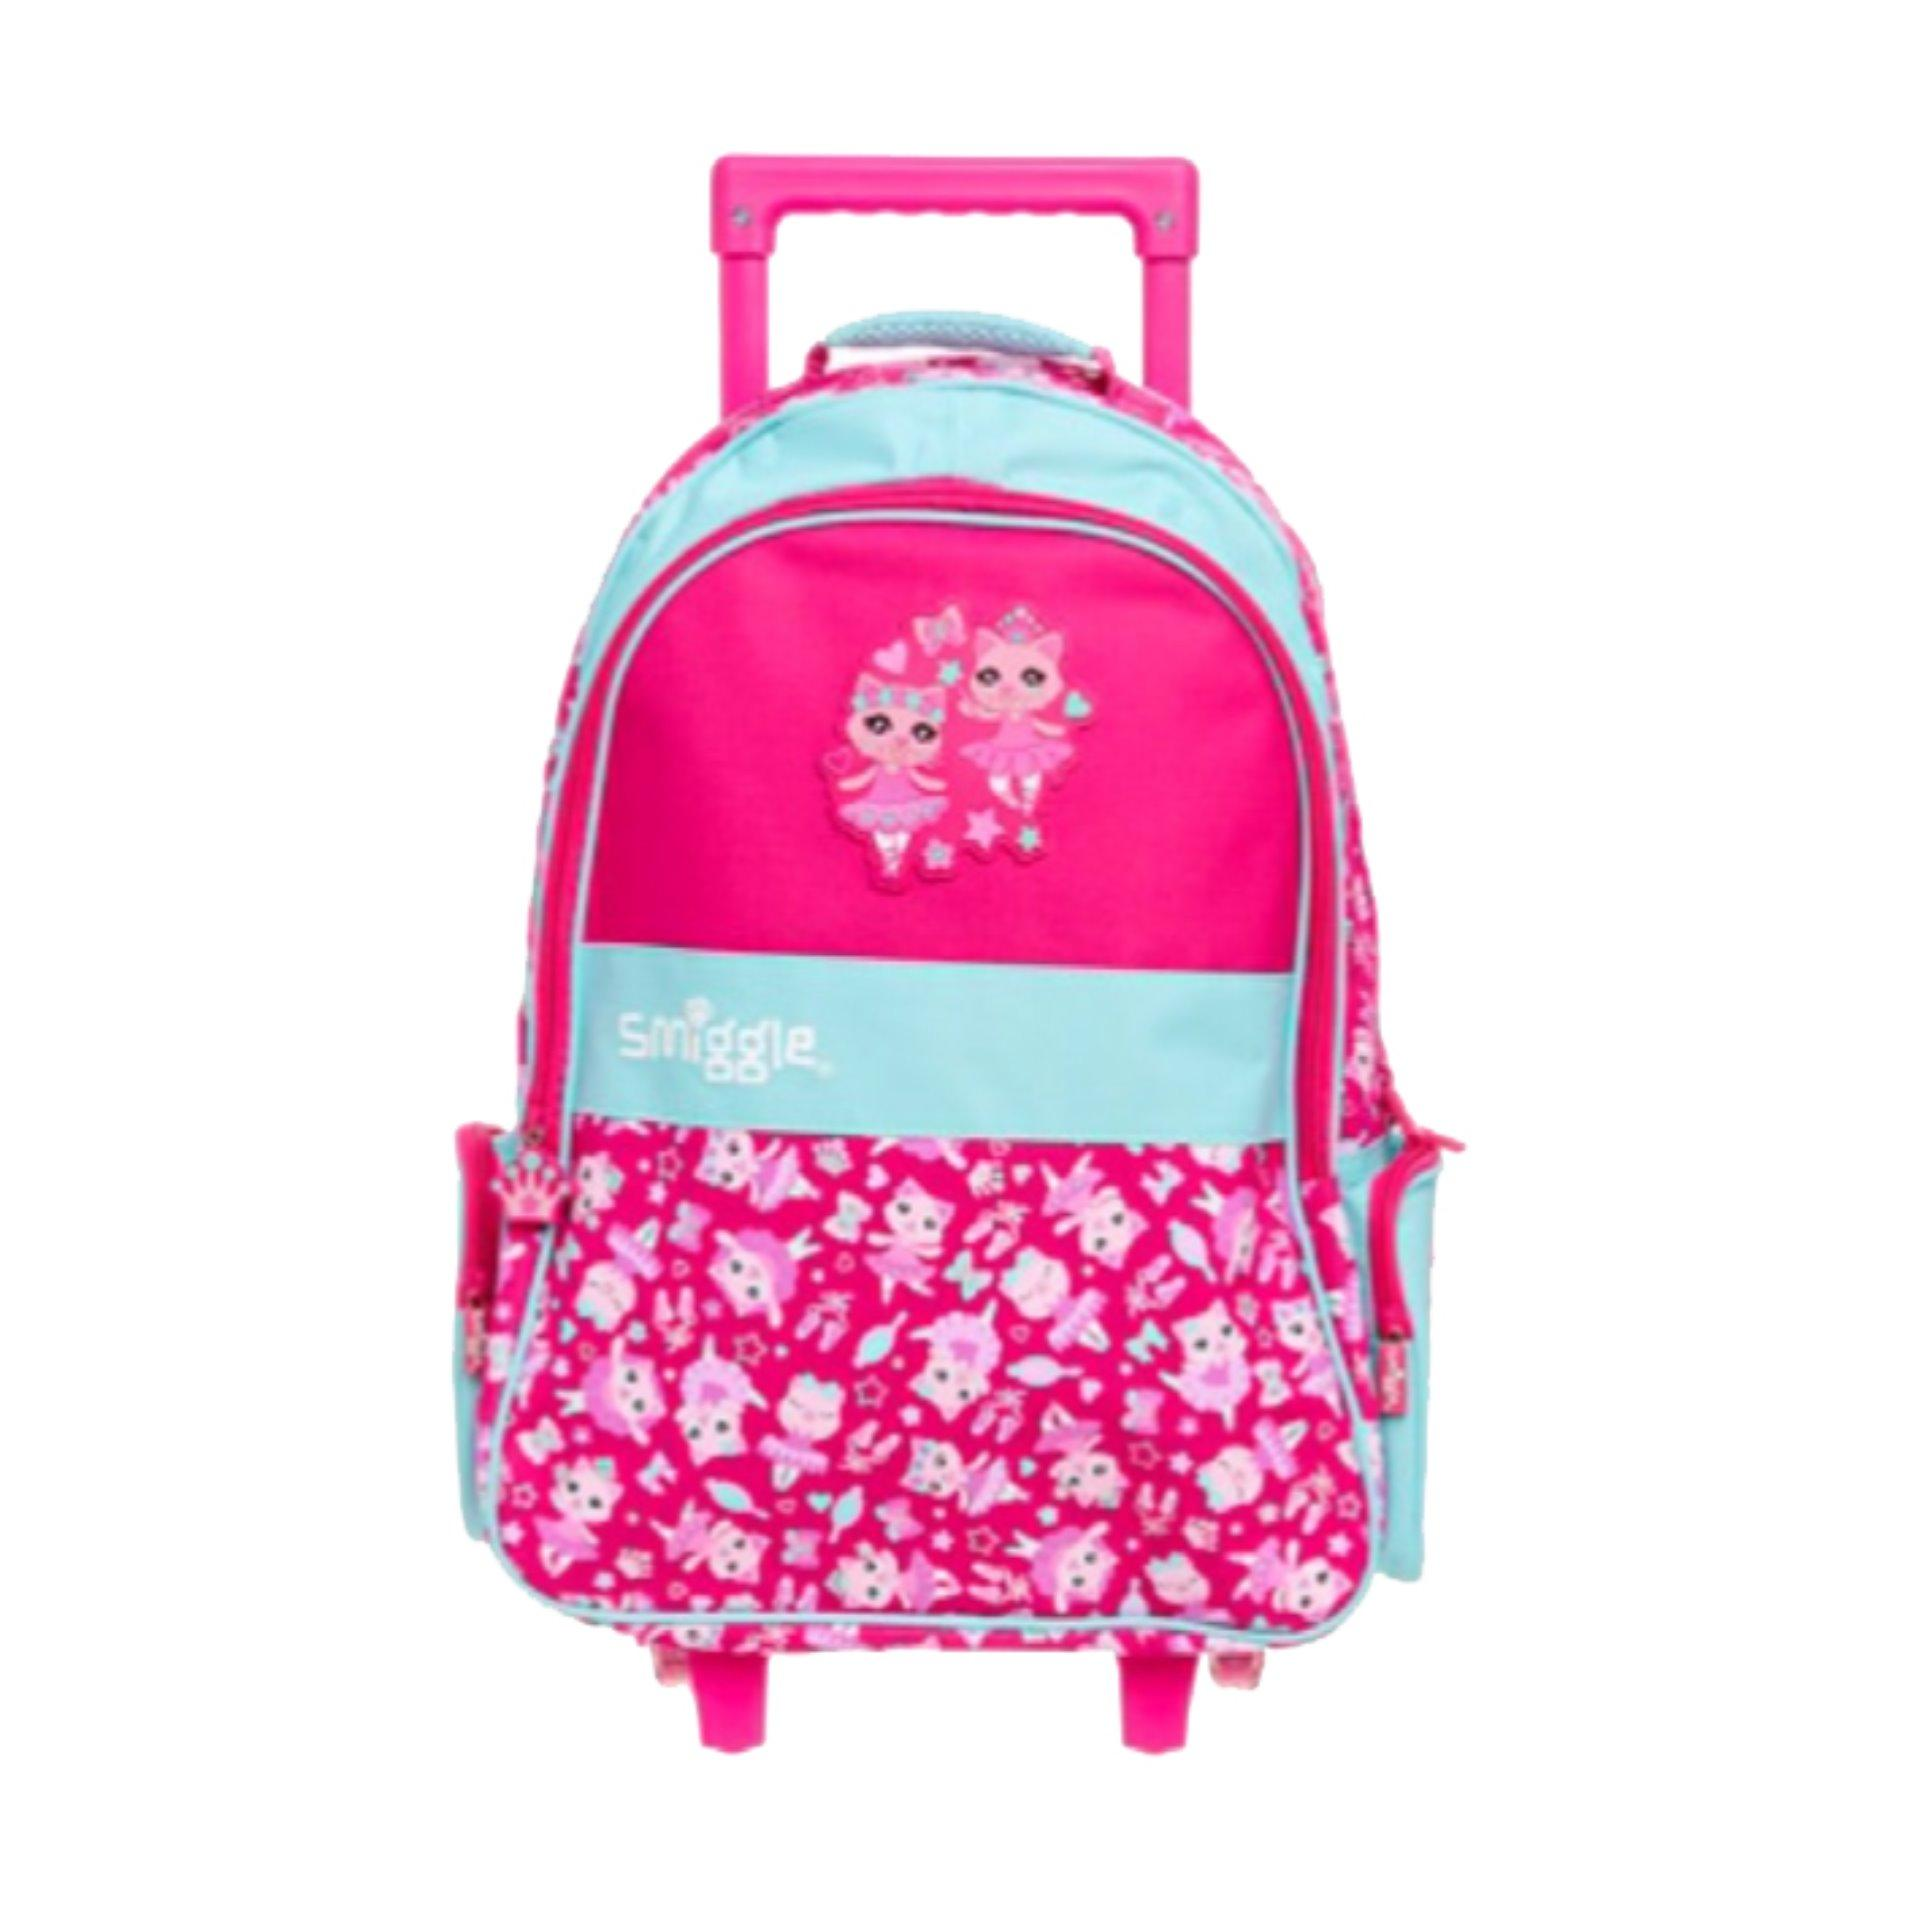 IMPORT FROM SINGAPORE Karakter unik. JARANG ADA YANG PUNYA Smiggle Light Swish Trolley Backpack - PINK CAT